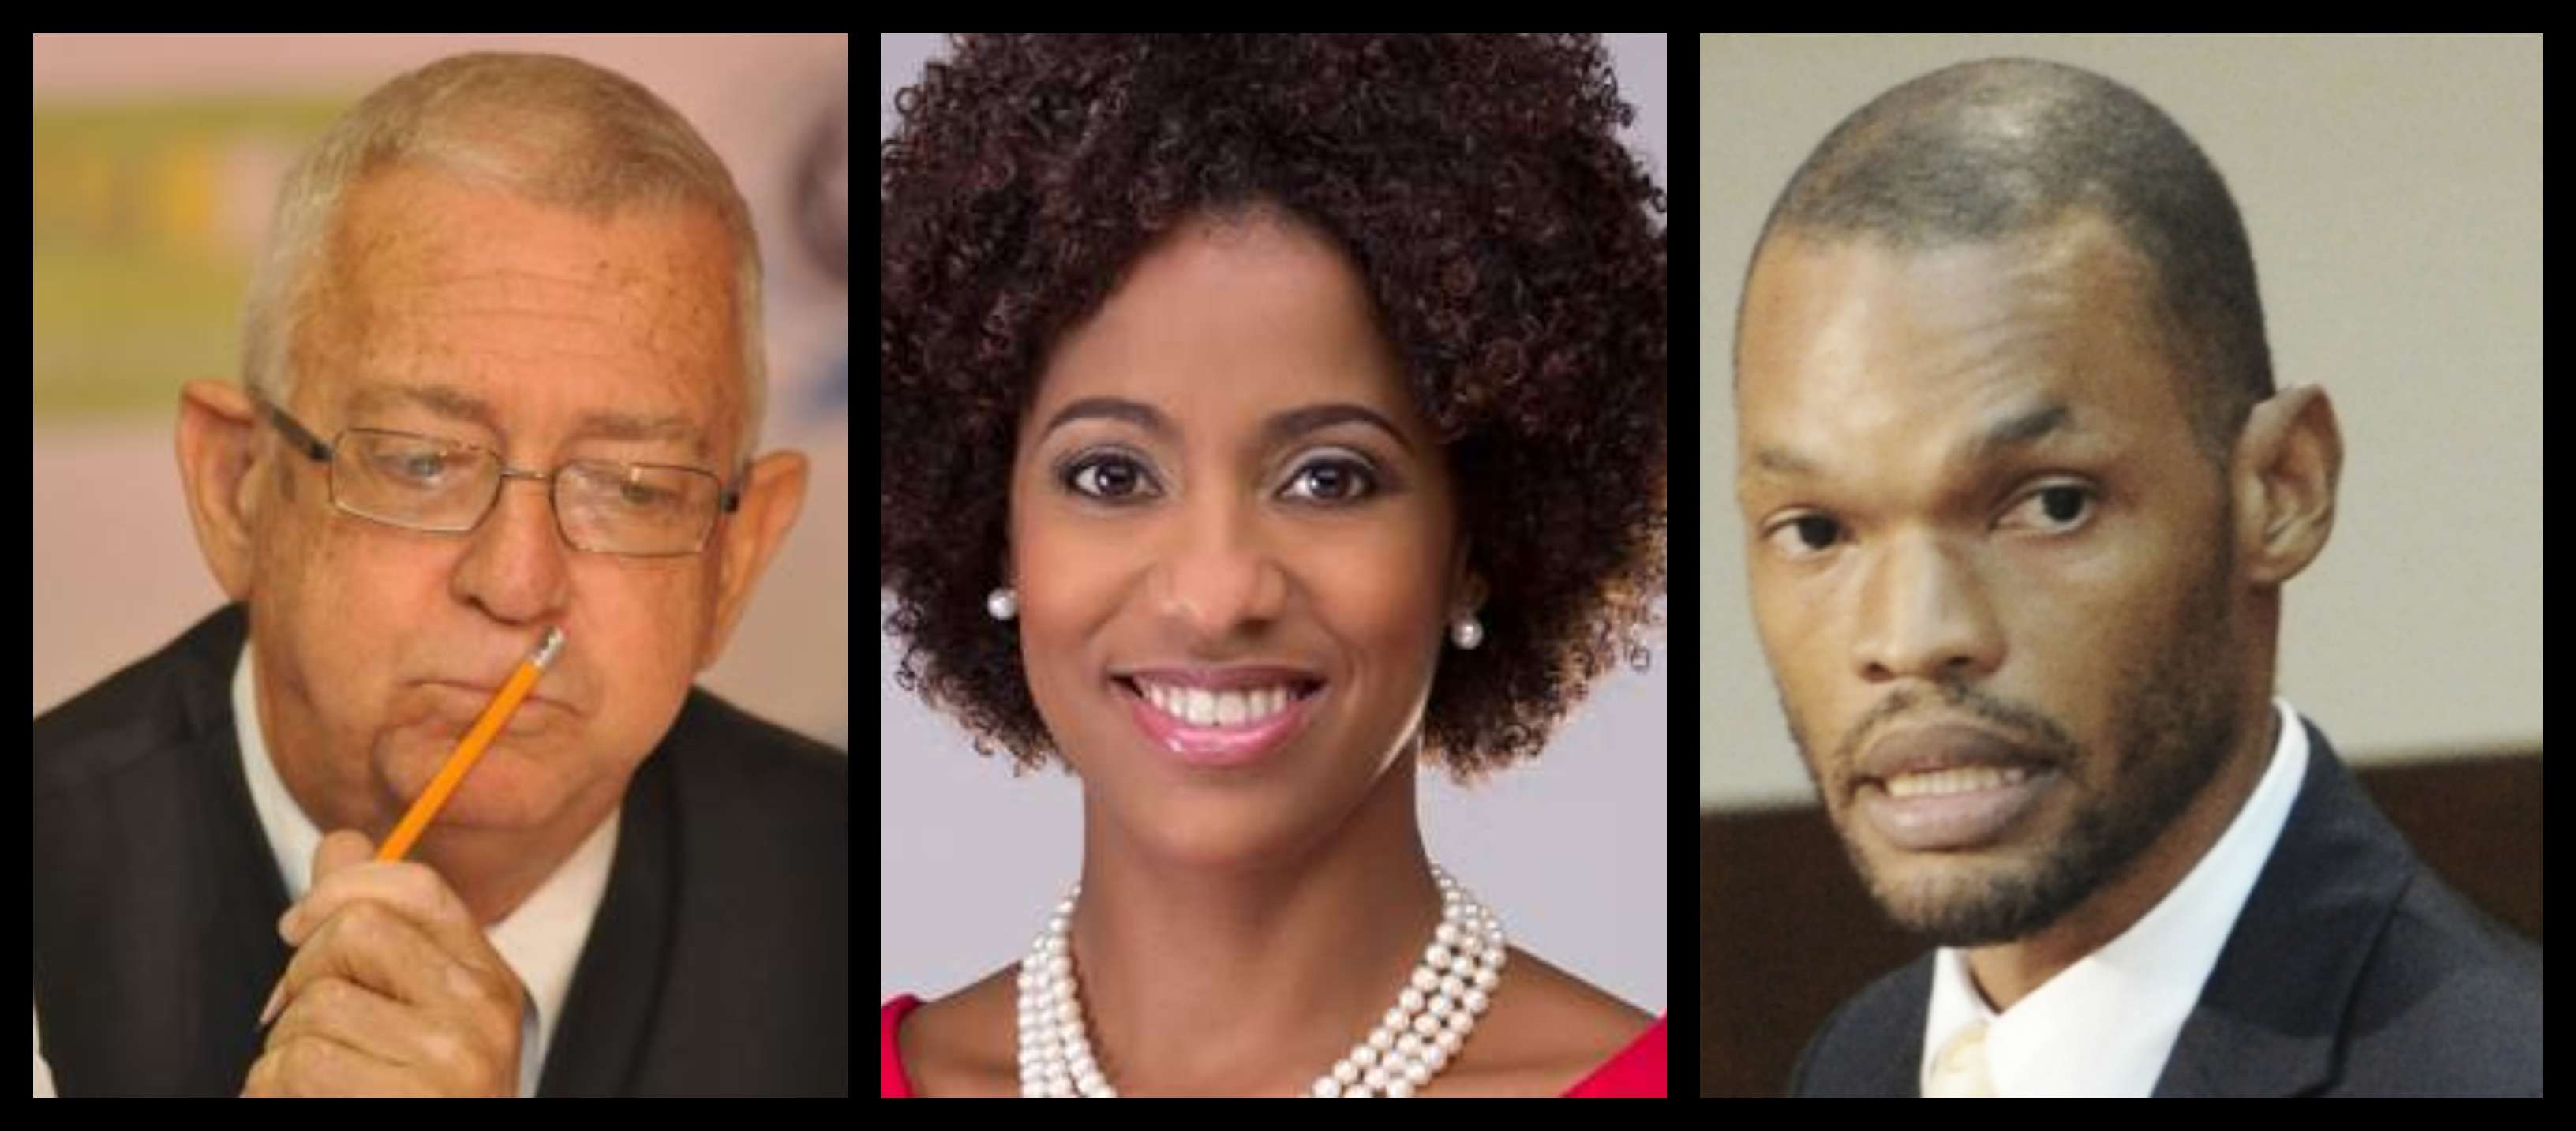 Thwaites Walks From Politics – Pryce, Duncan-Price Line Up To Succeed Him